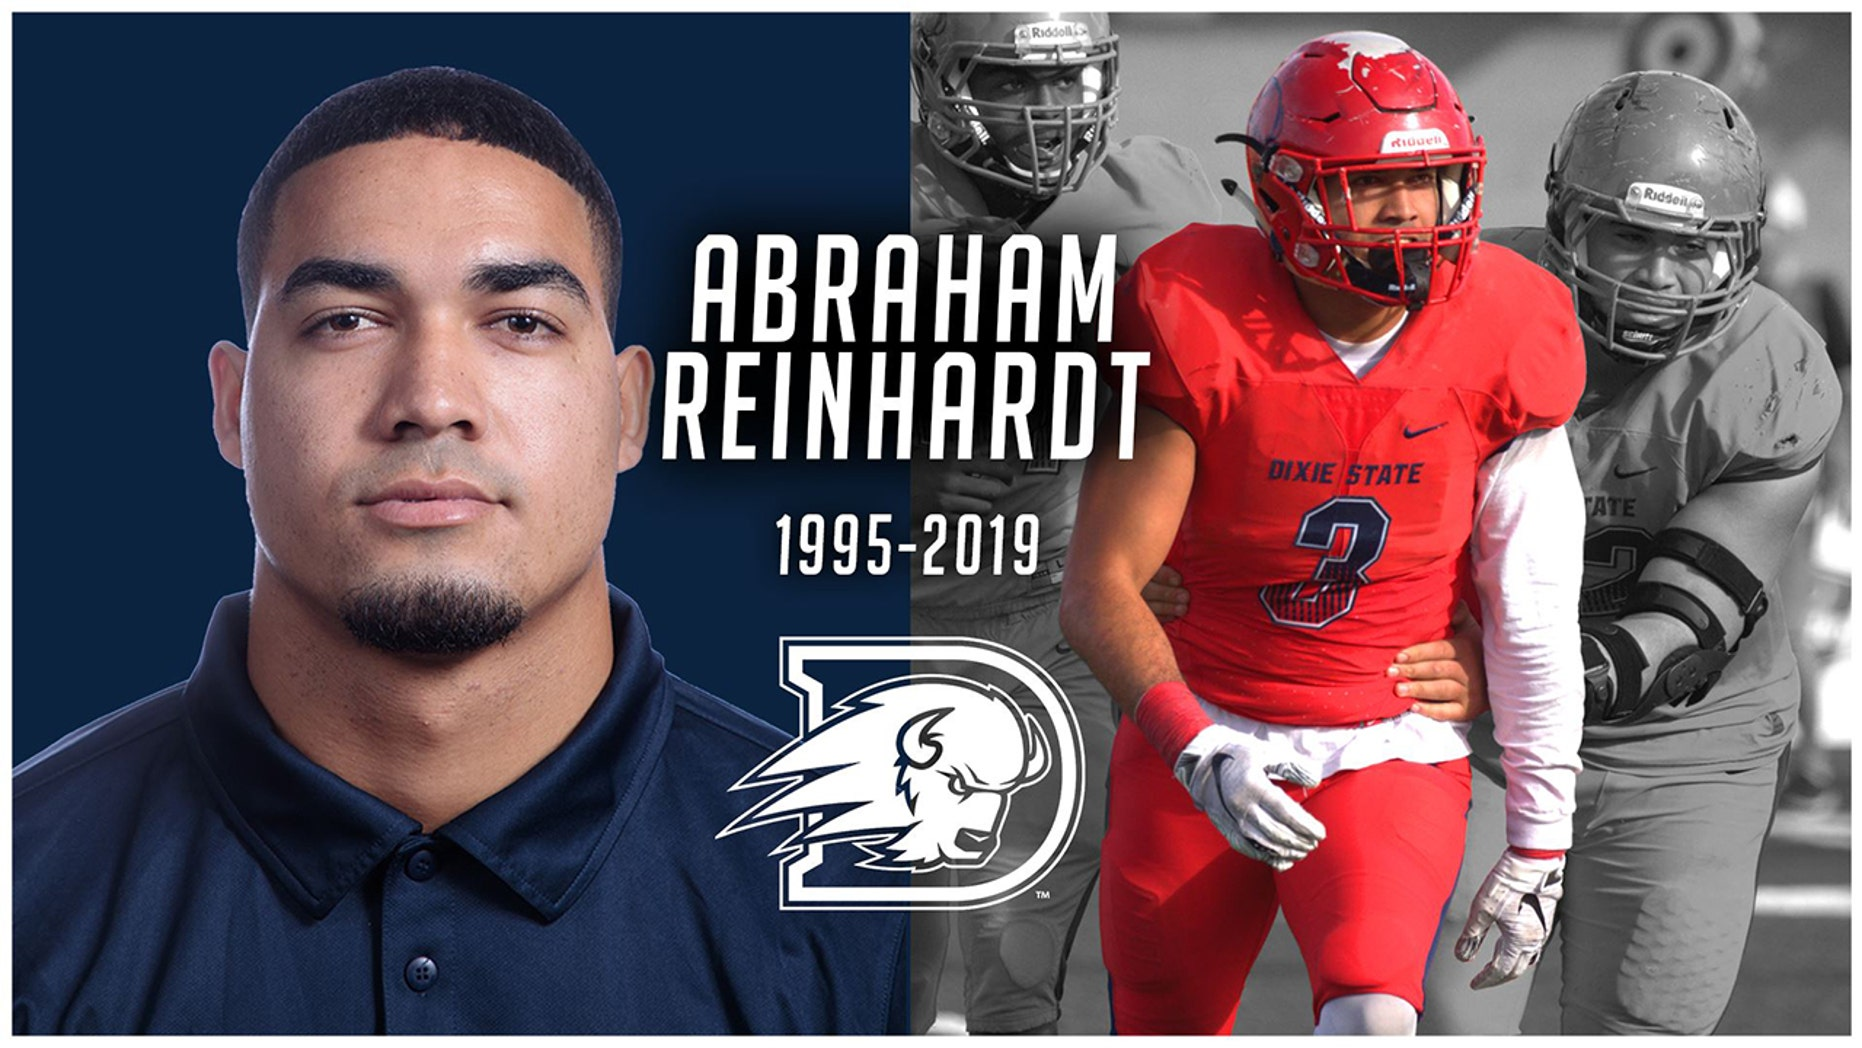 Abraham Reinhardt died Friday from an unexpected illness, reports said.